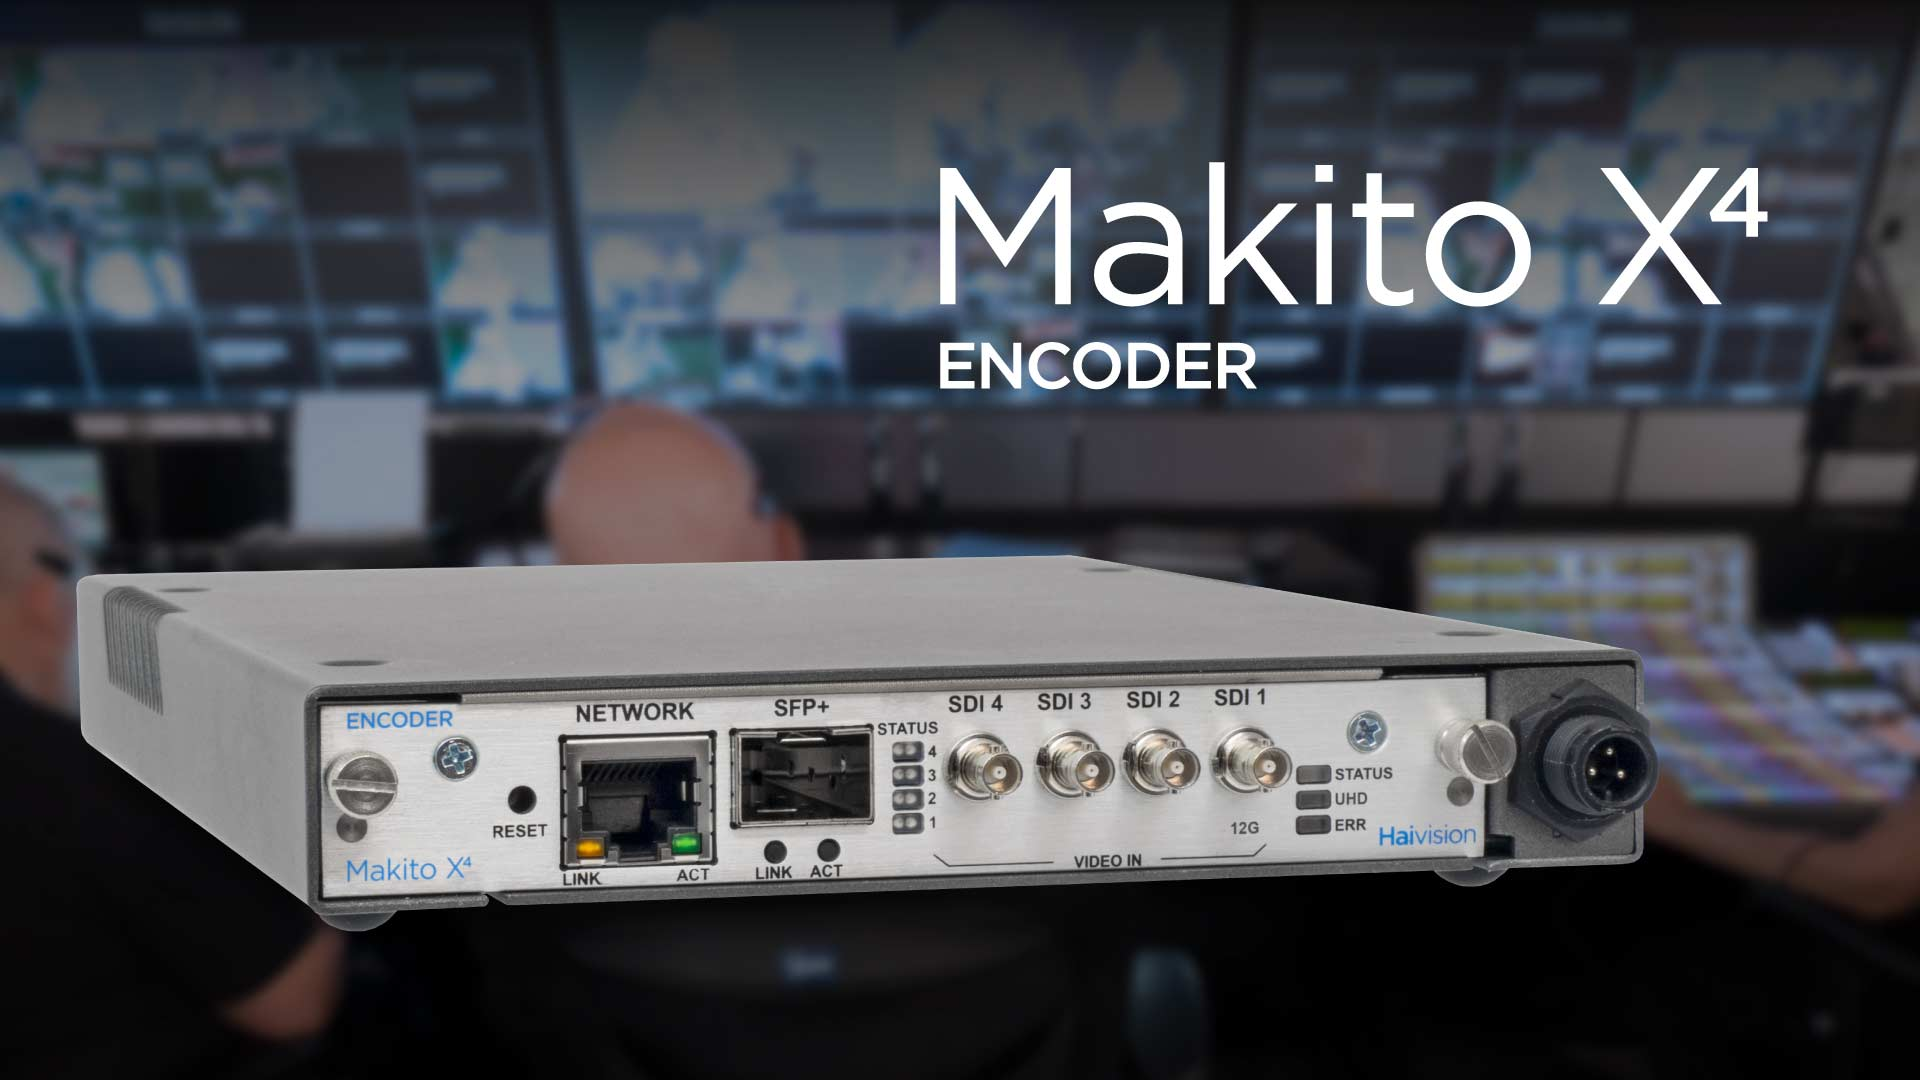 High-Quality and Low-Latency Transmission of 4K Video Contents through Public Network! ~Starts to Sell Makito X4, Ultra-Low Latency Video Encoder by Haivision~